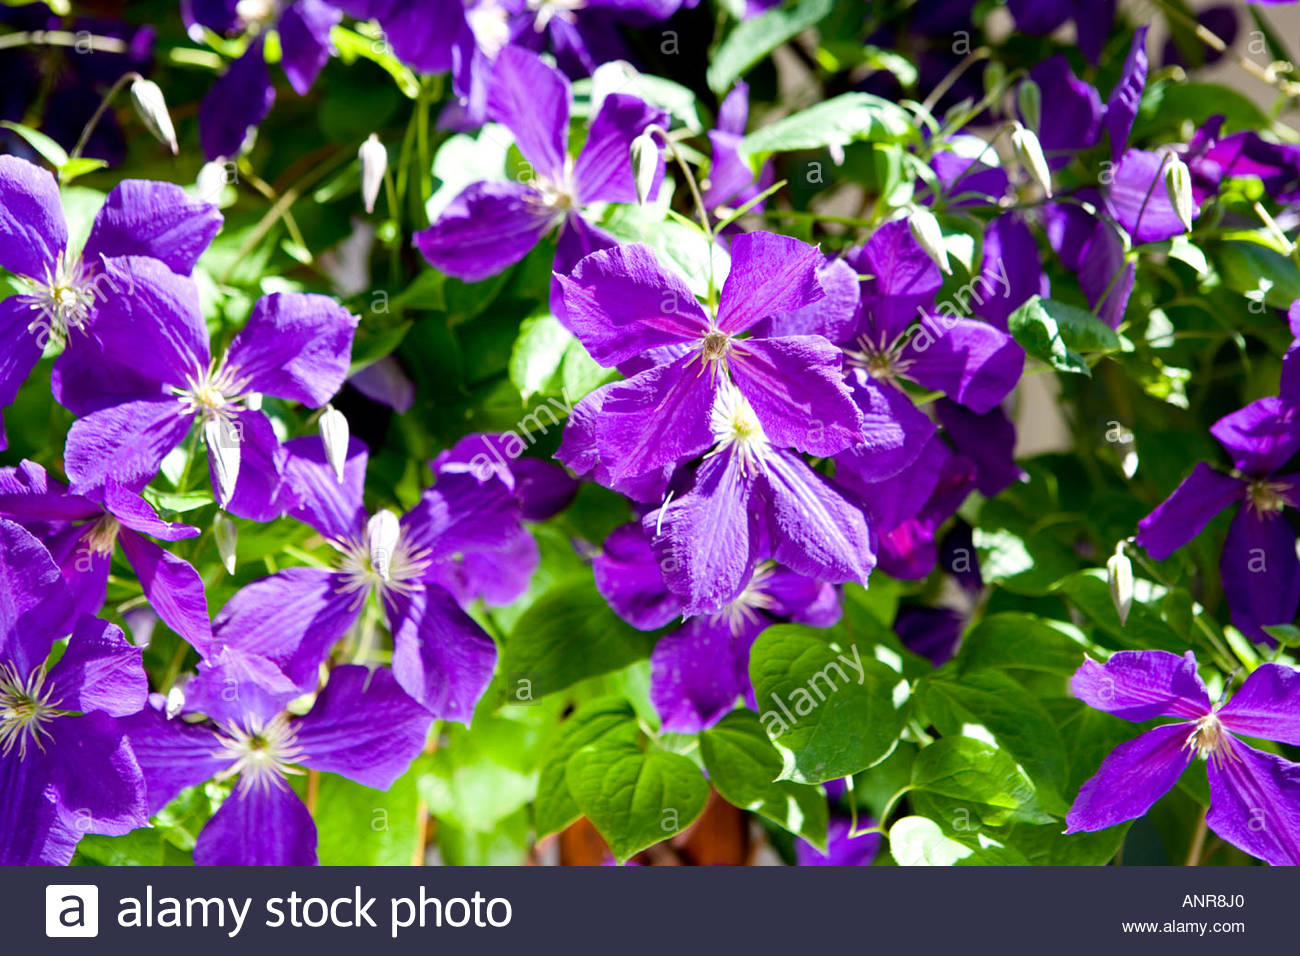 Common Clematis Stock Photos & Common Clematis Stock Images.